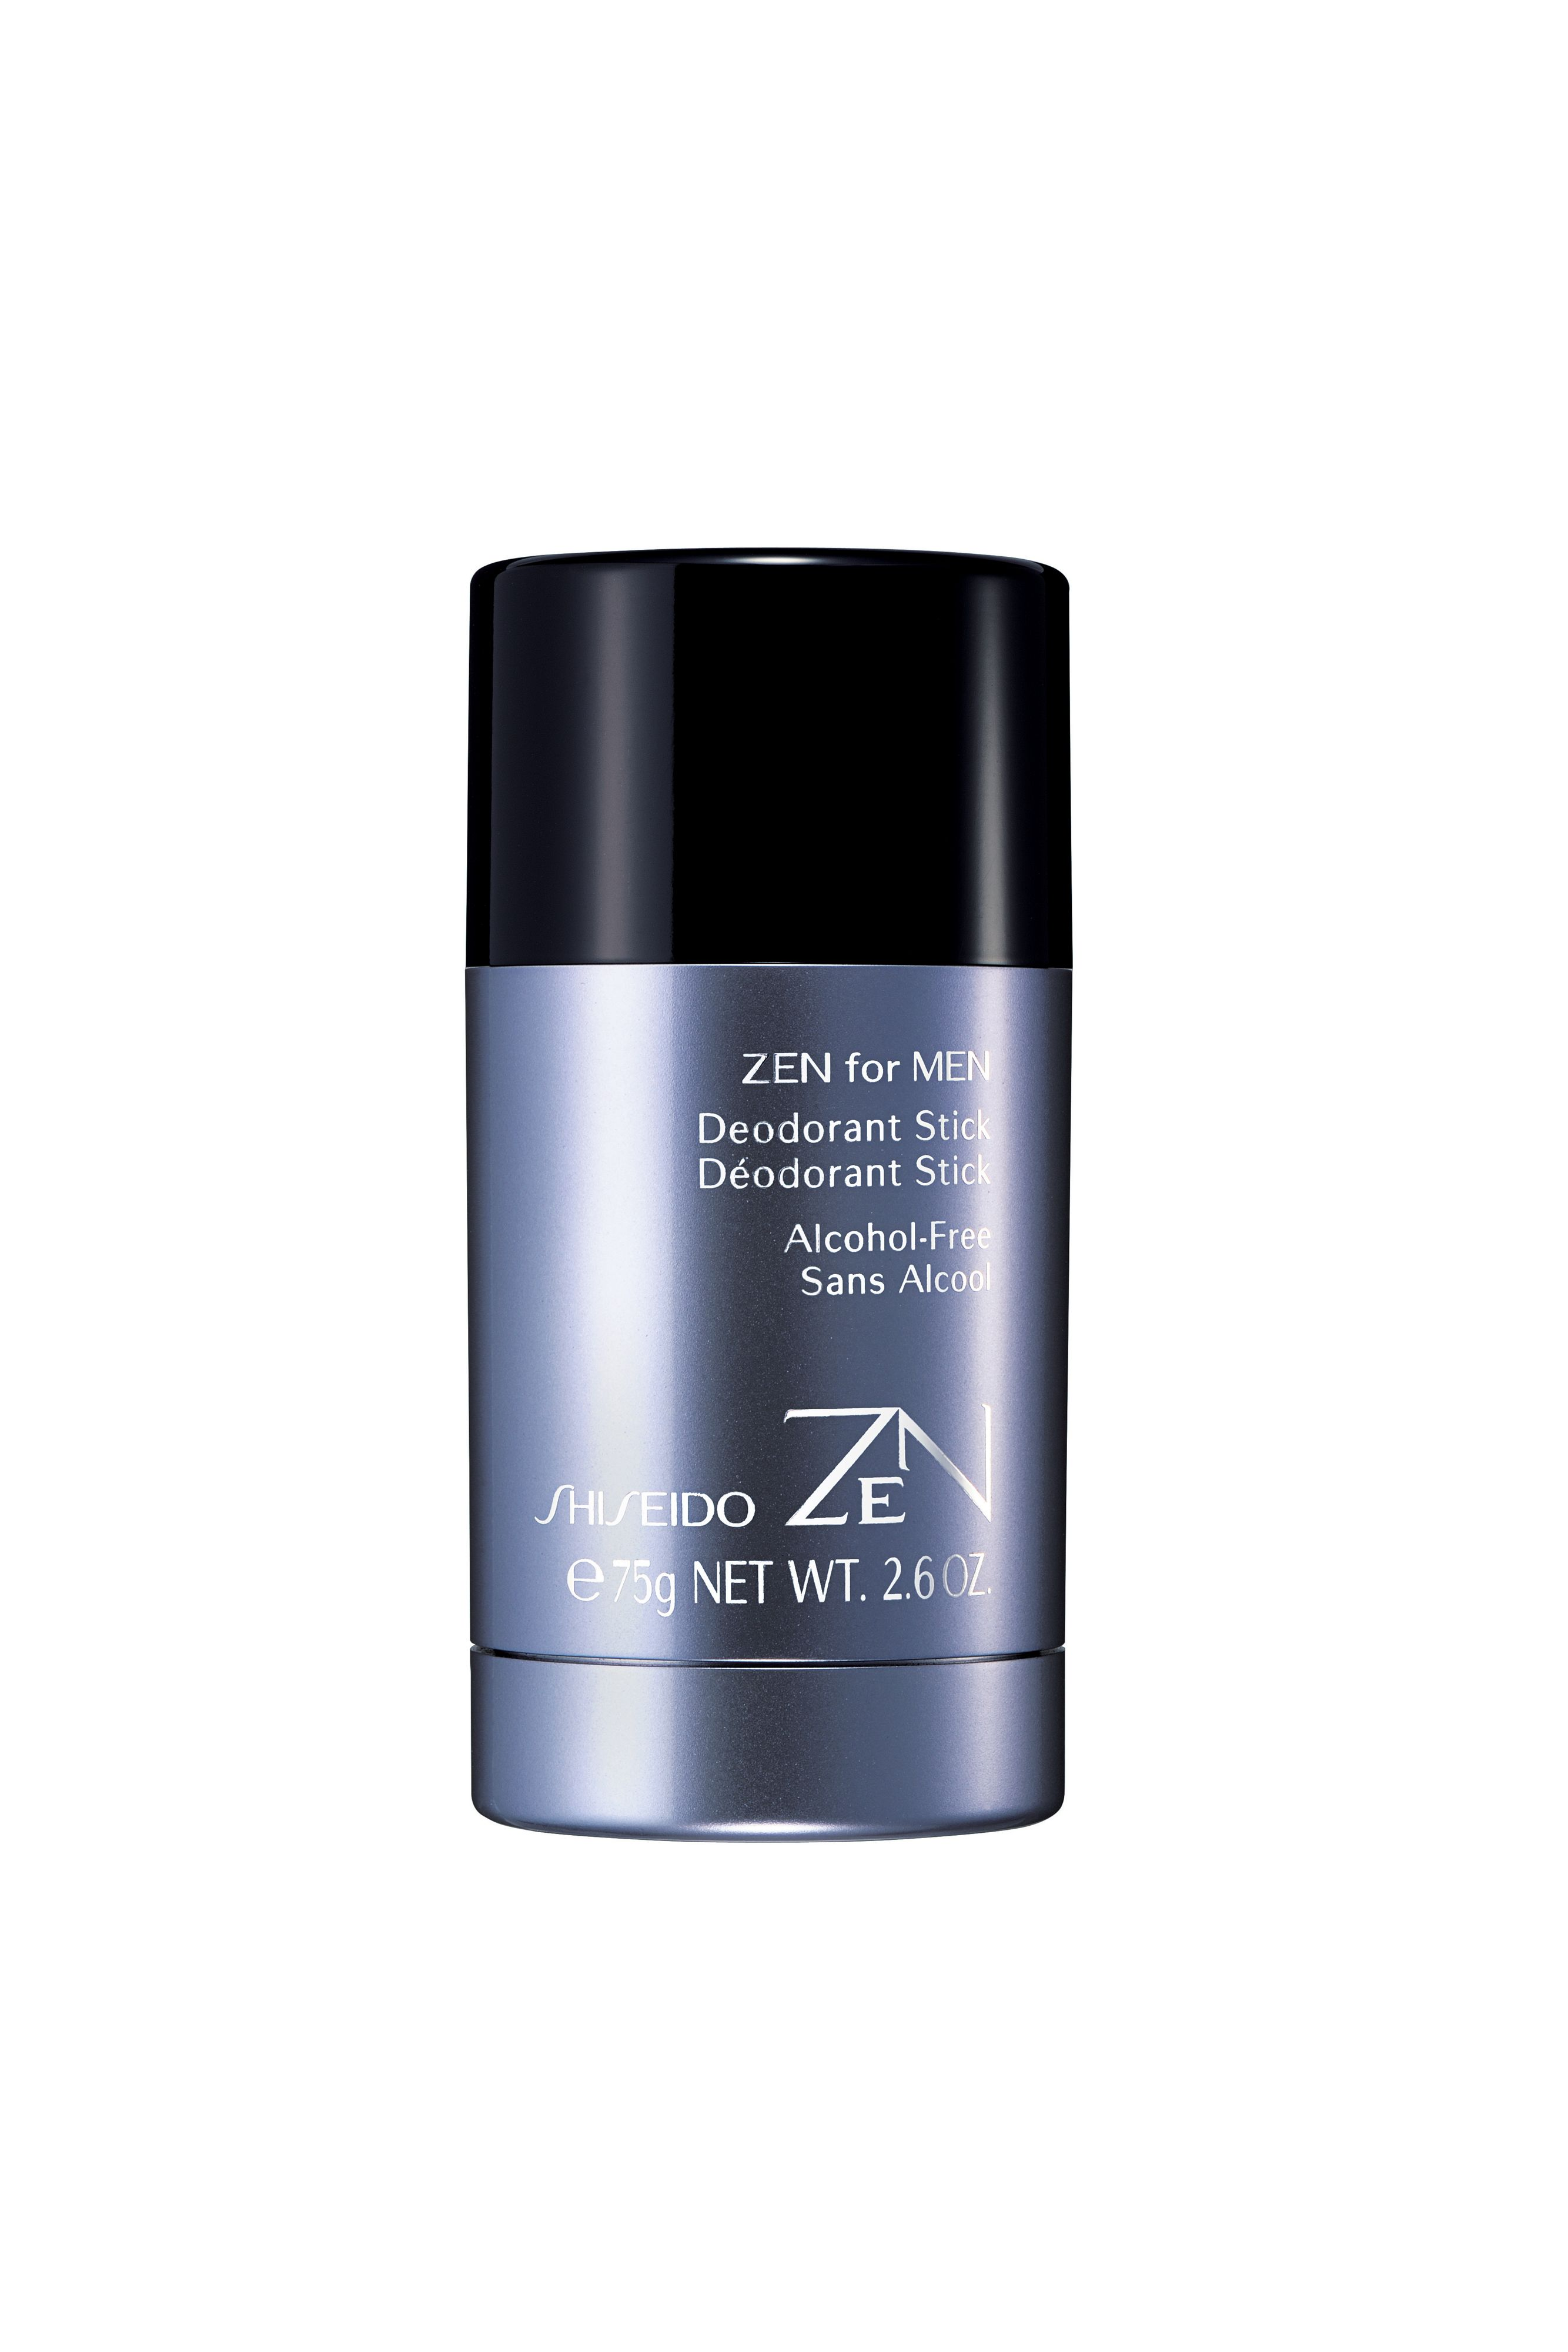 Zen for Men deodorant stick 75g